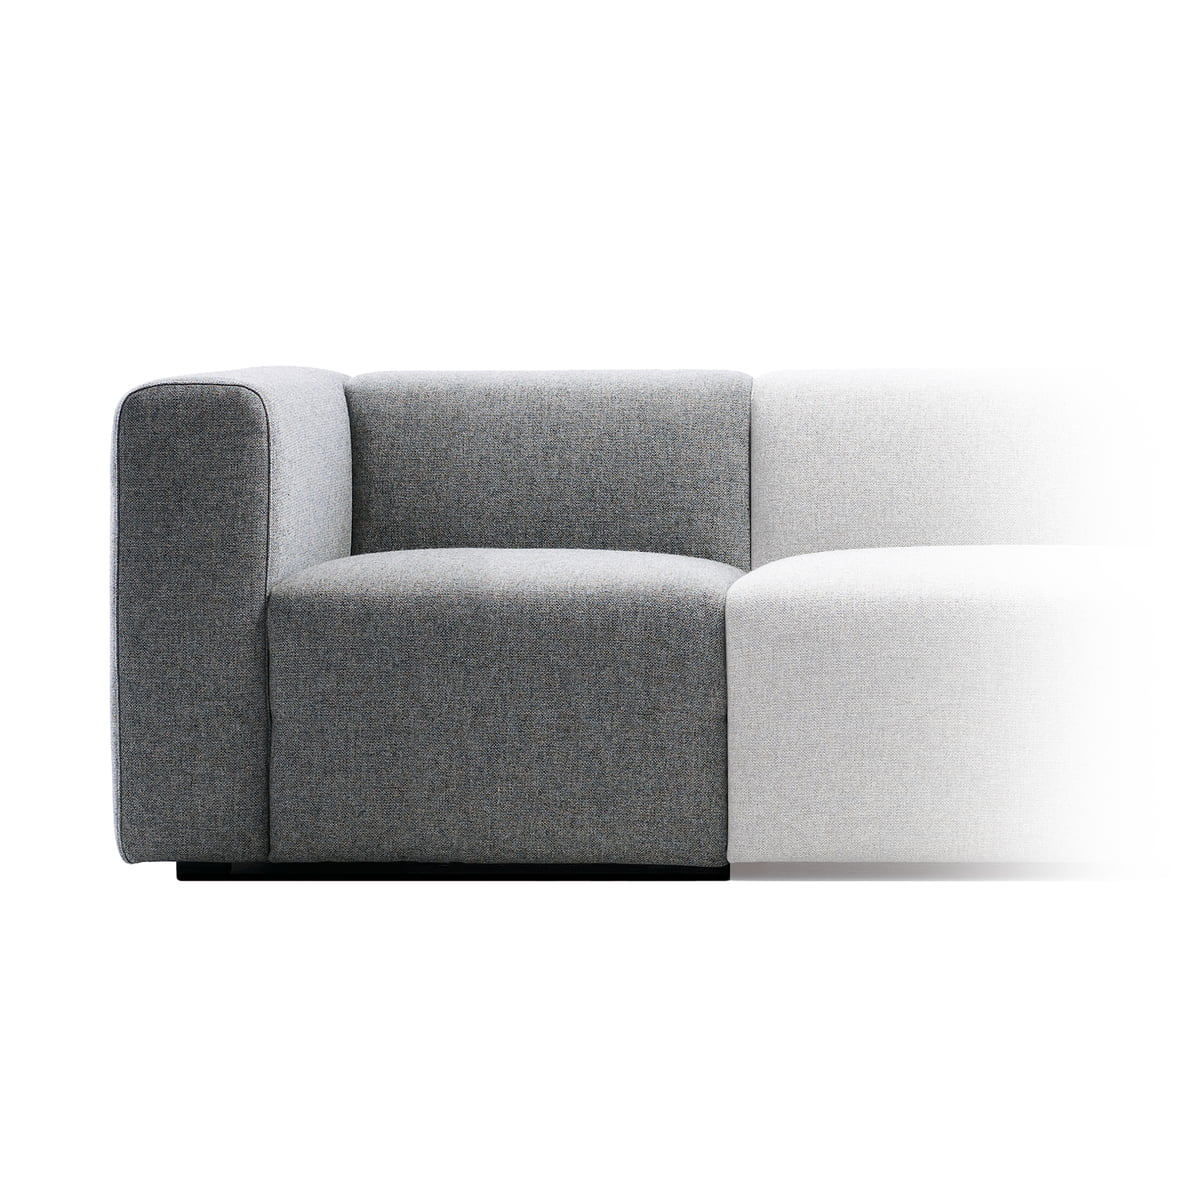 mags sofa modules narrow by hay in our shop. Black Bedroom Furniture Sets. Home Design Ideas